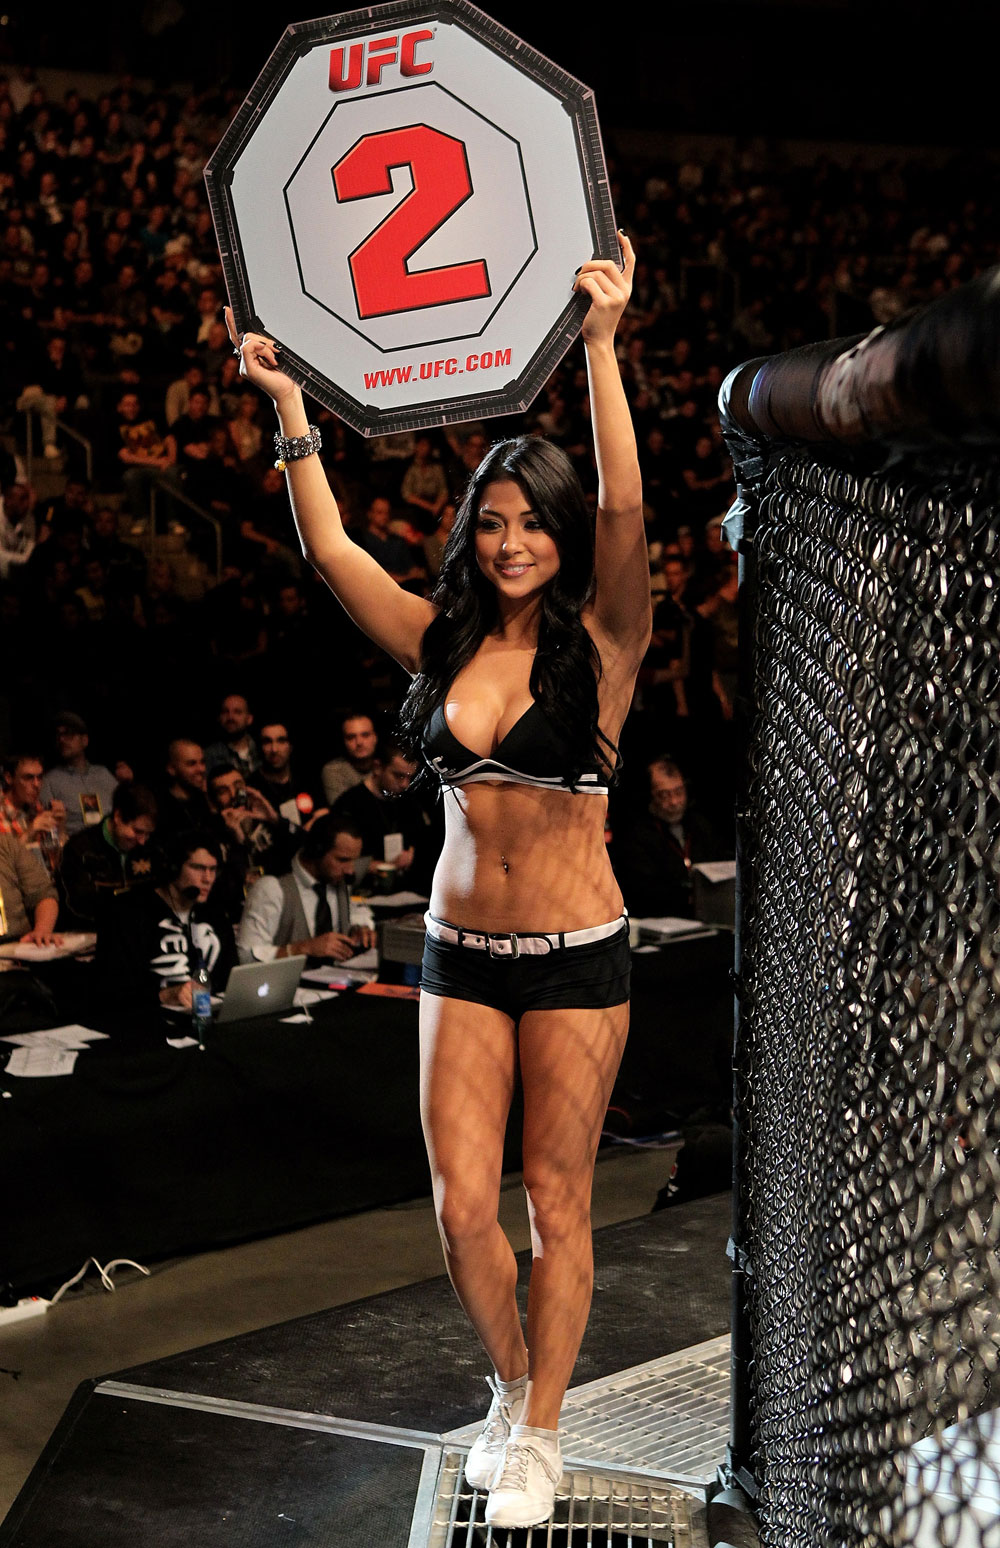 Ring girl Arianny Celeste parades around the ring during UFC 122 at the Konig Pilsner Arena on November 13, 2010 in Oberhausen, Germany. (Photo by Josh Hedges/Zuffa LLC/Zuffa LLC)